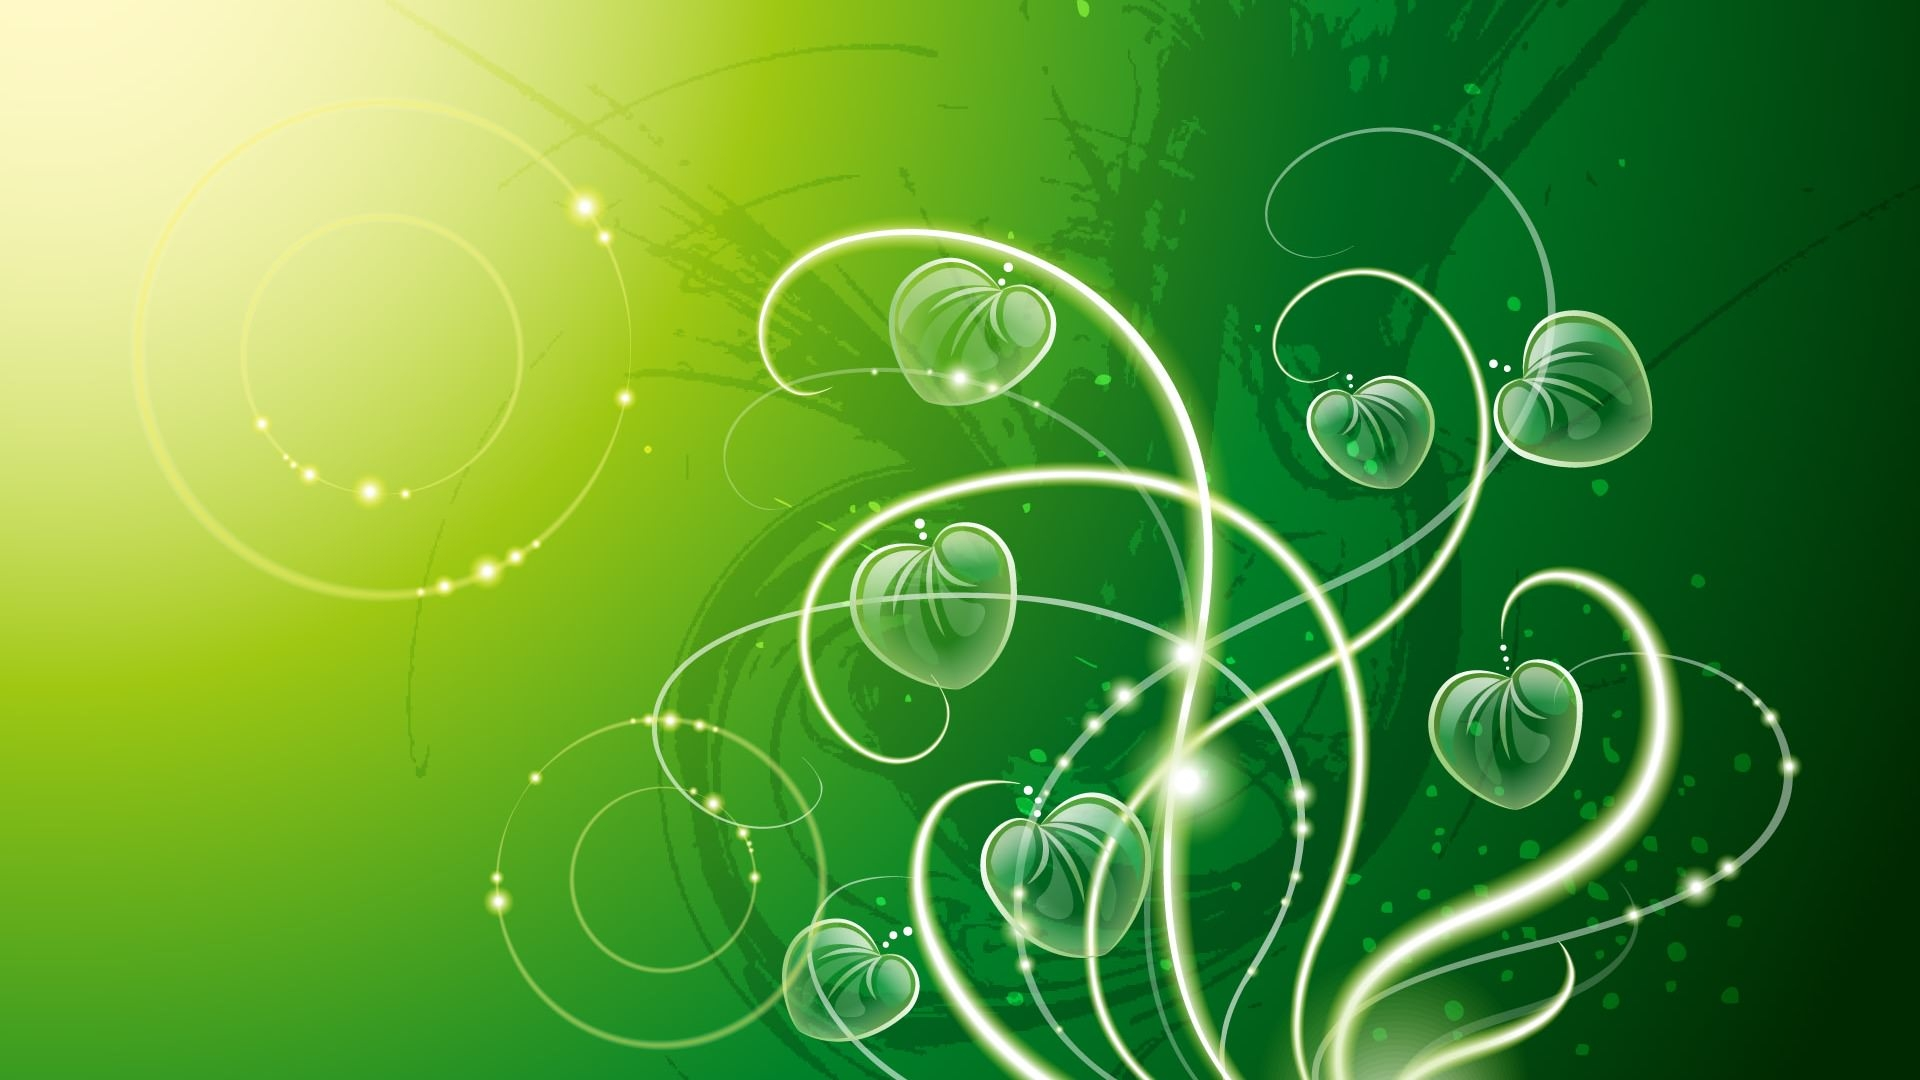 Green Abstract Wallpaper For Download